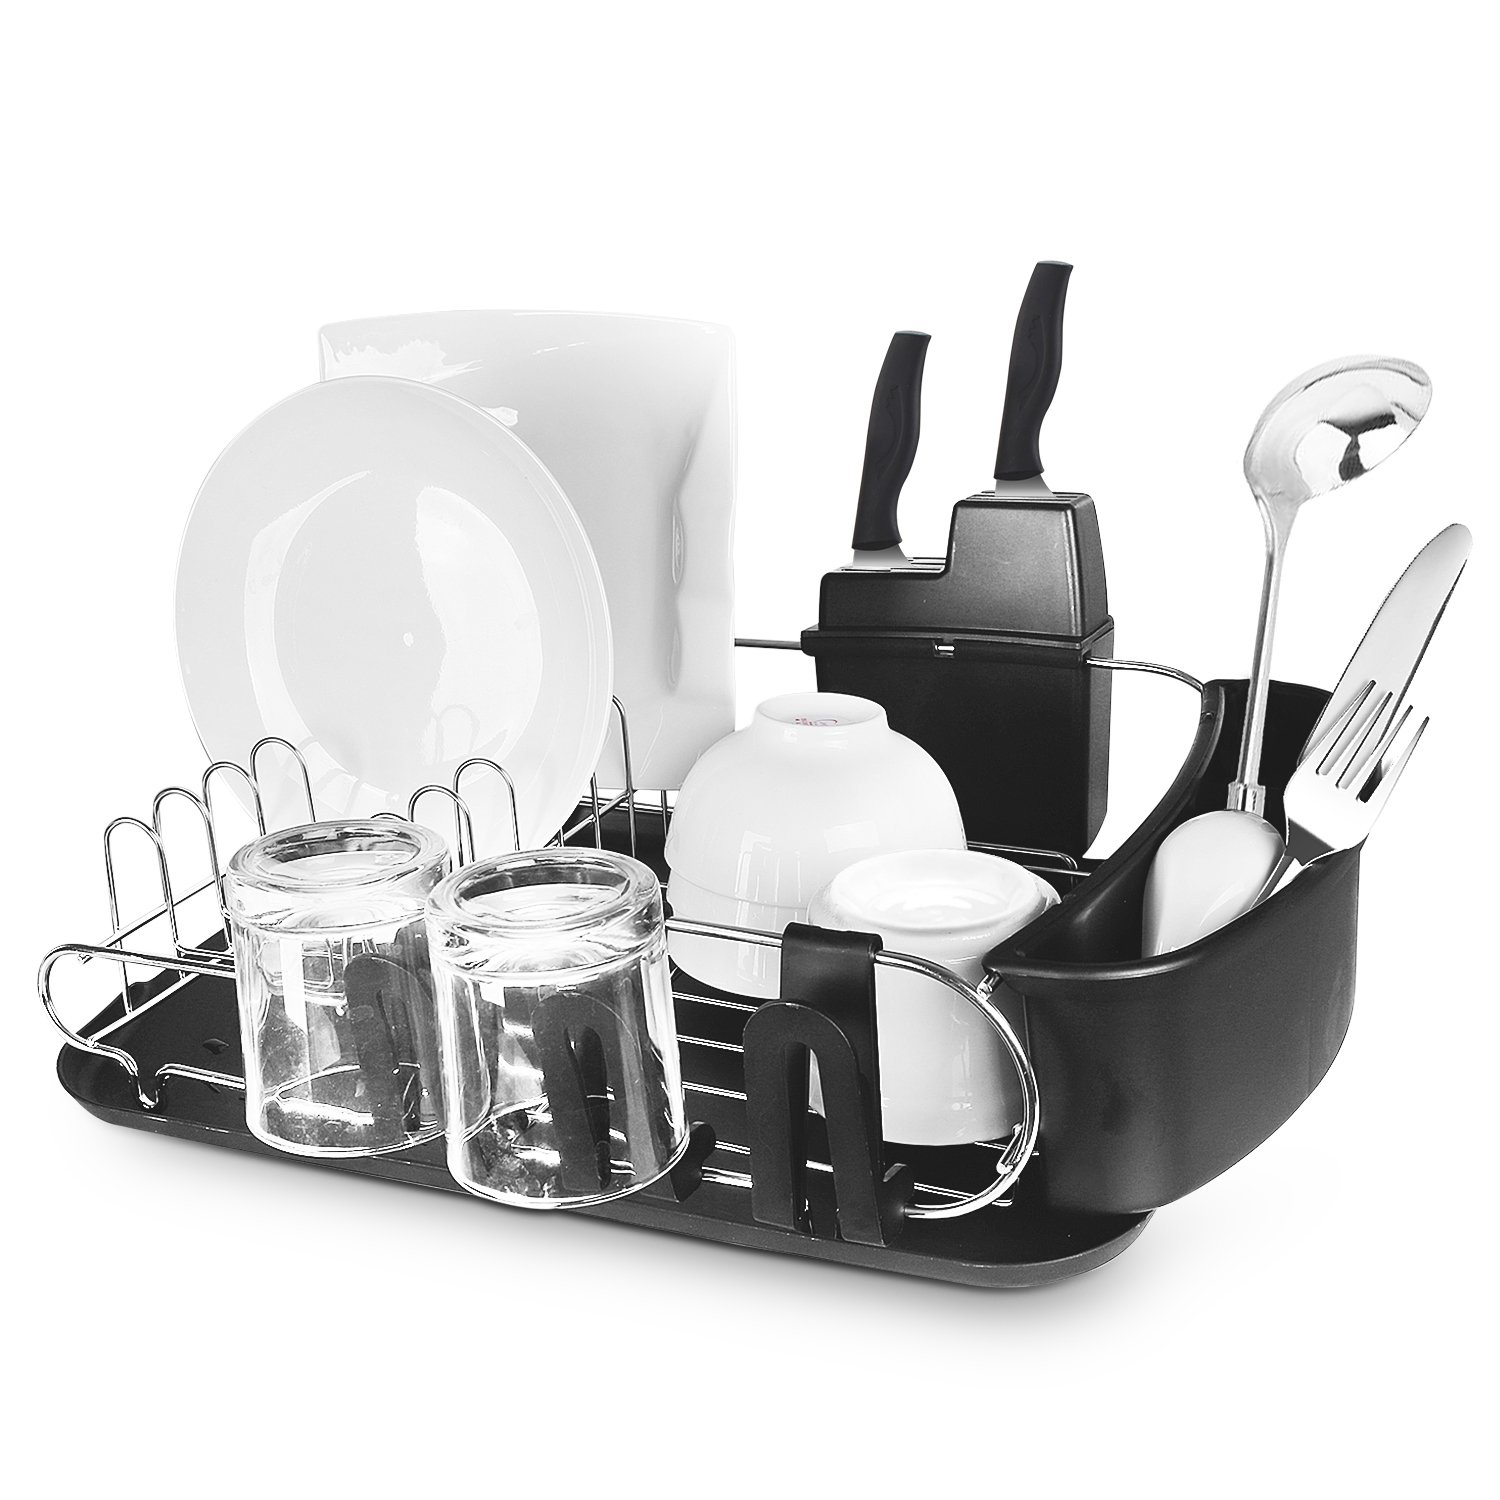 Dish Drying Rack – Multifunctional U-Shaped Stainless Steel Dish Rack With Nontoxic Plastic Drain Board, Removable Utensil, Cutlery & 3 Cup Holders – Hygienic High Capacity Design & Rustproof Metal